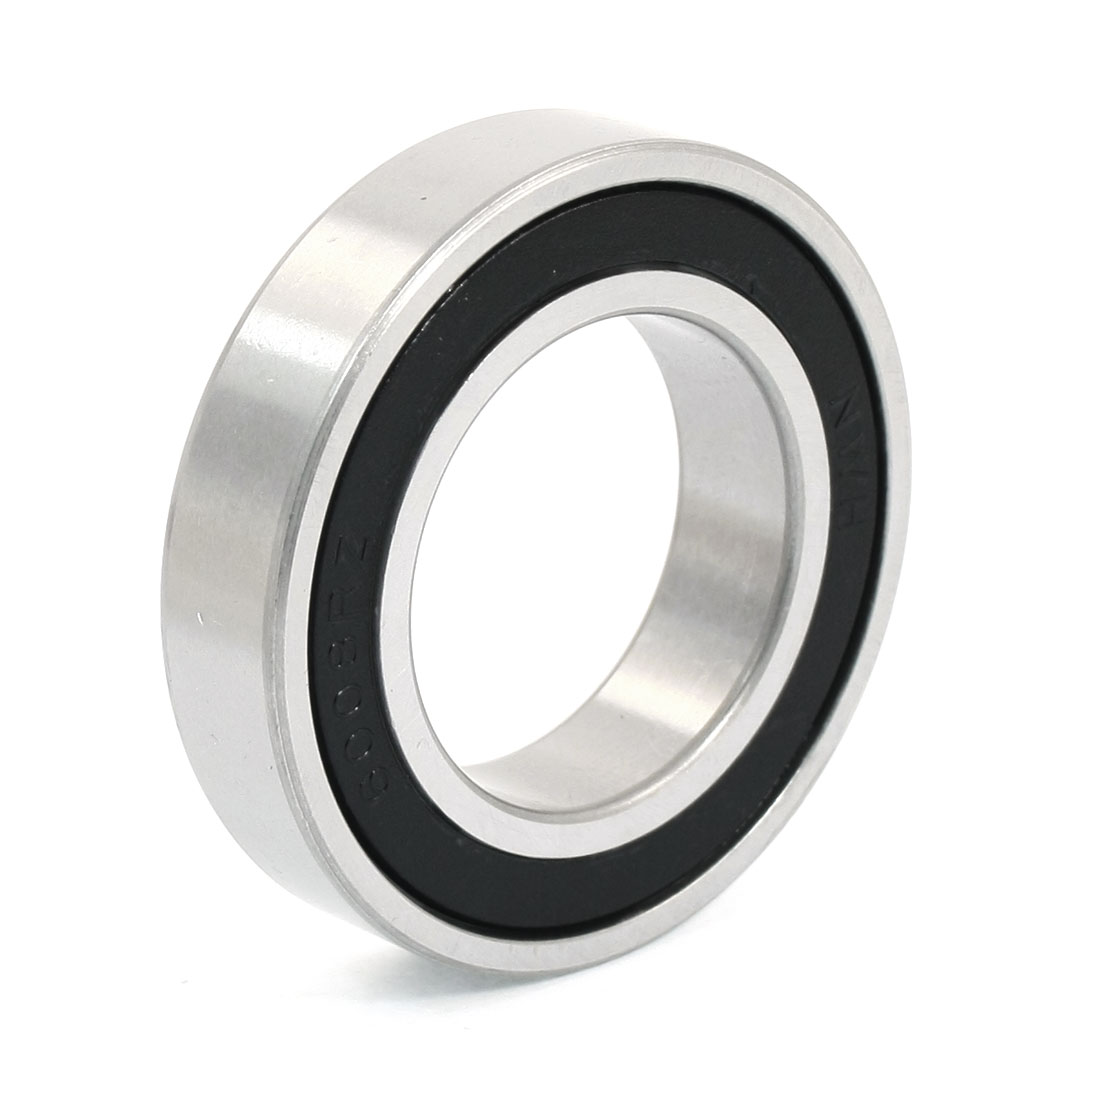 6008-2RS 40mmx68mmx15mm Sealed Groove Radial Ball Bearing